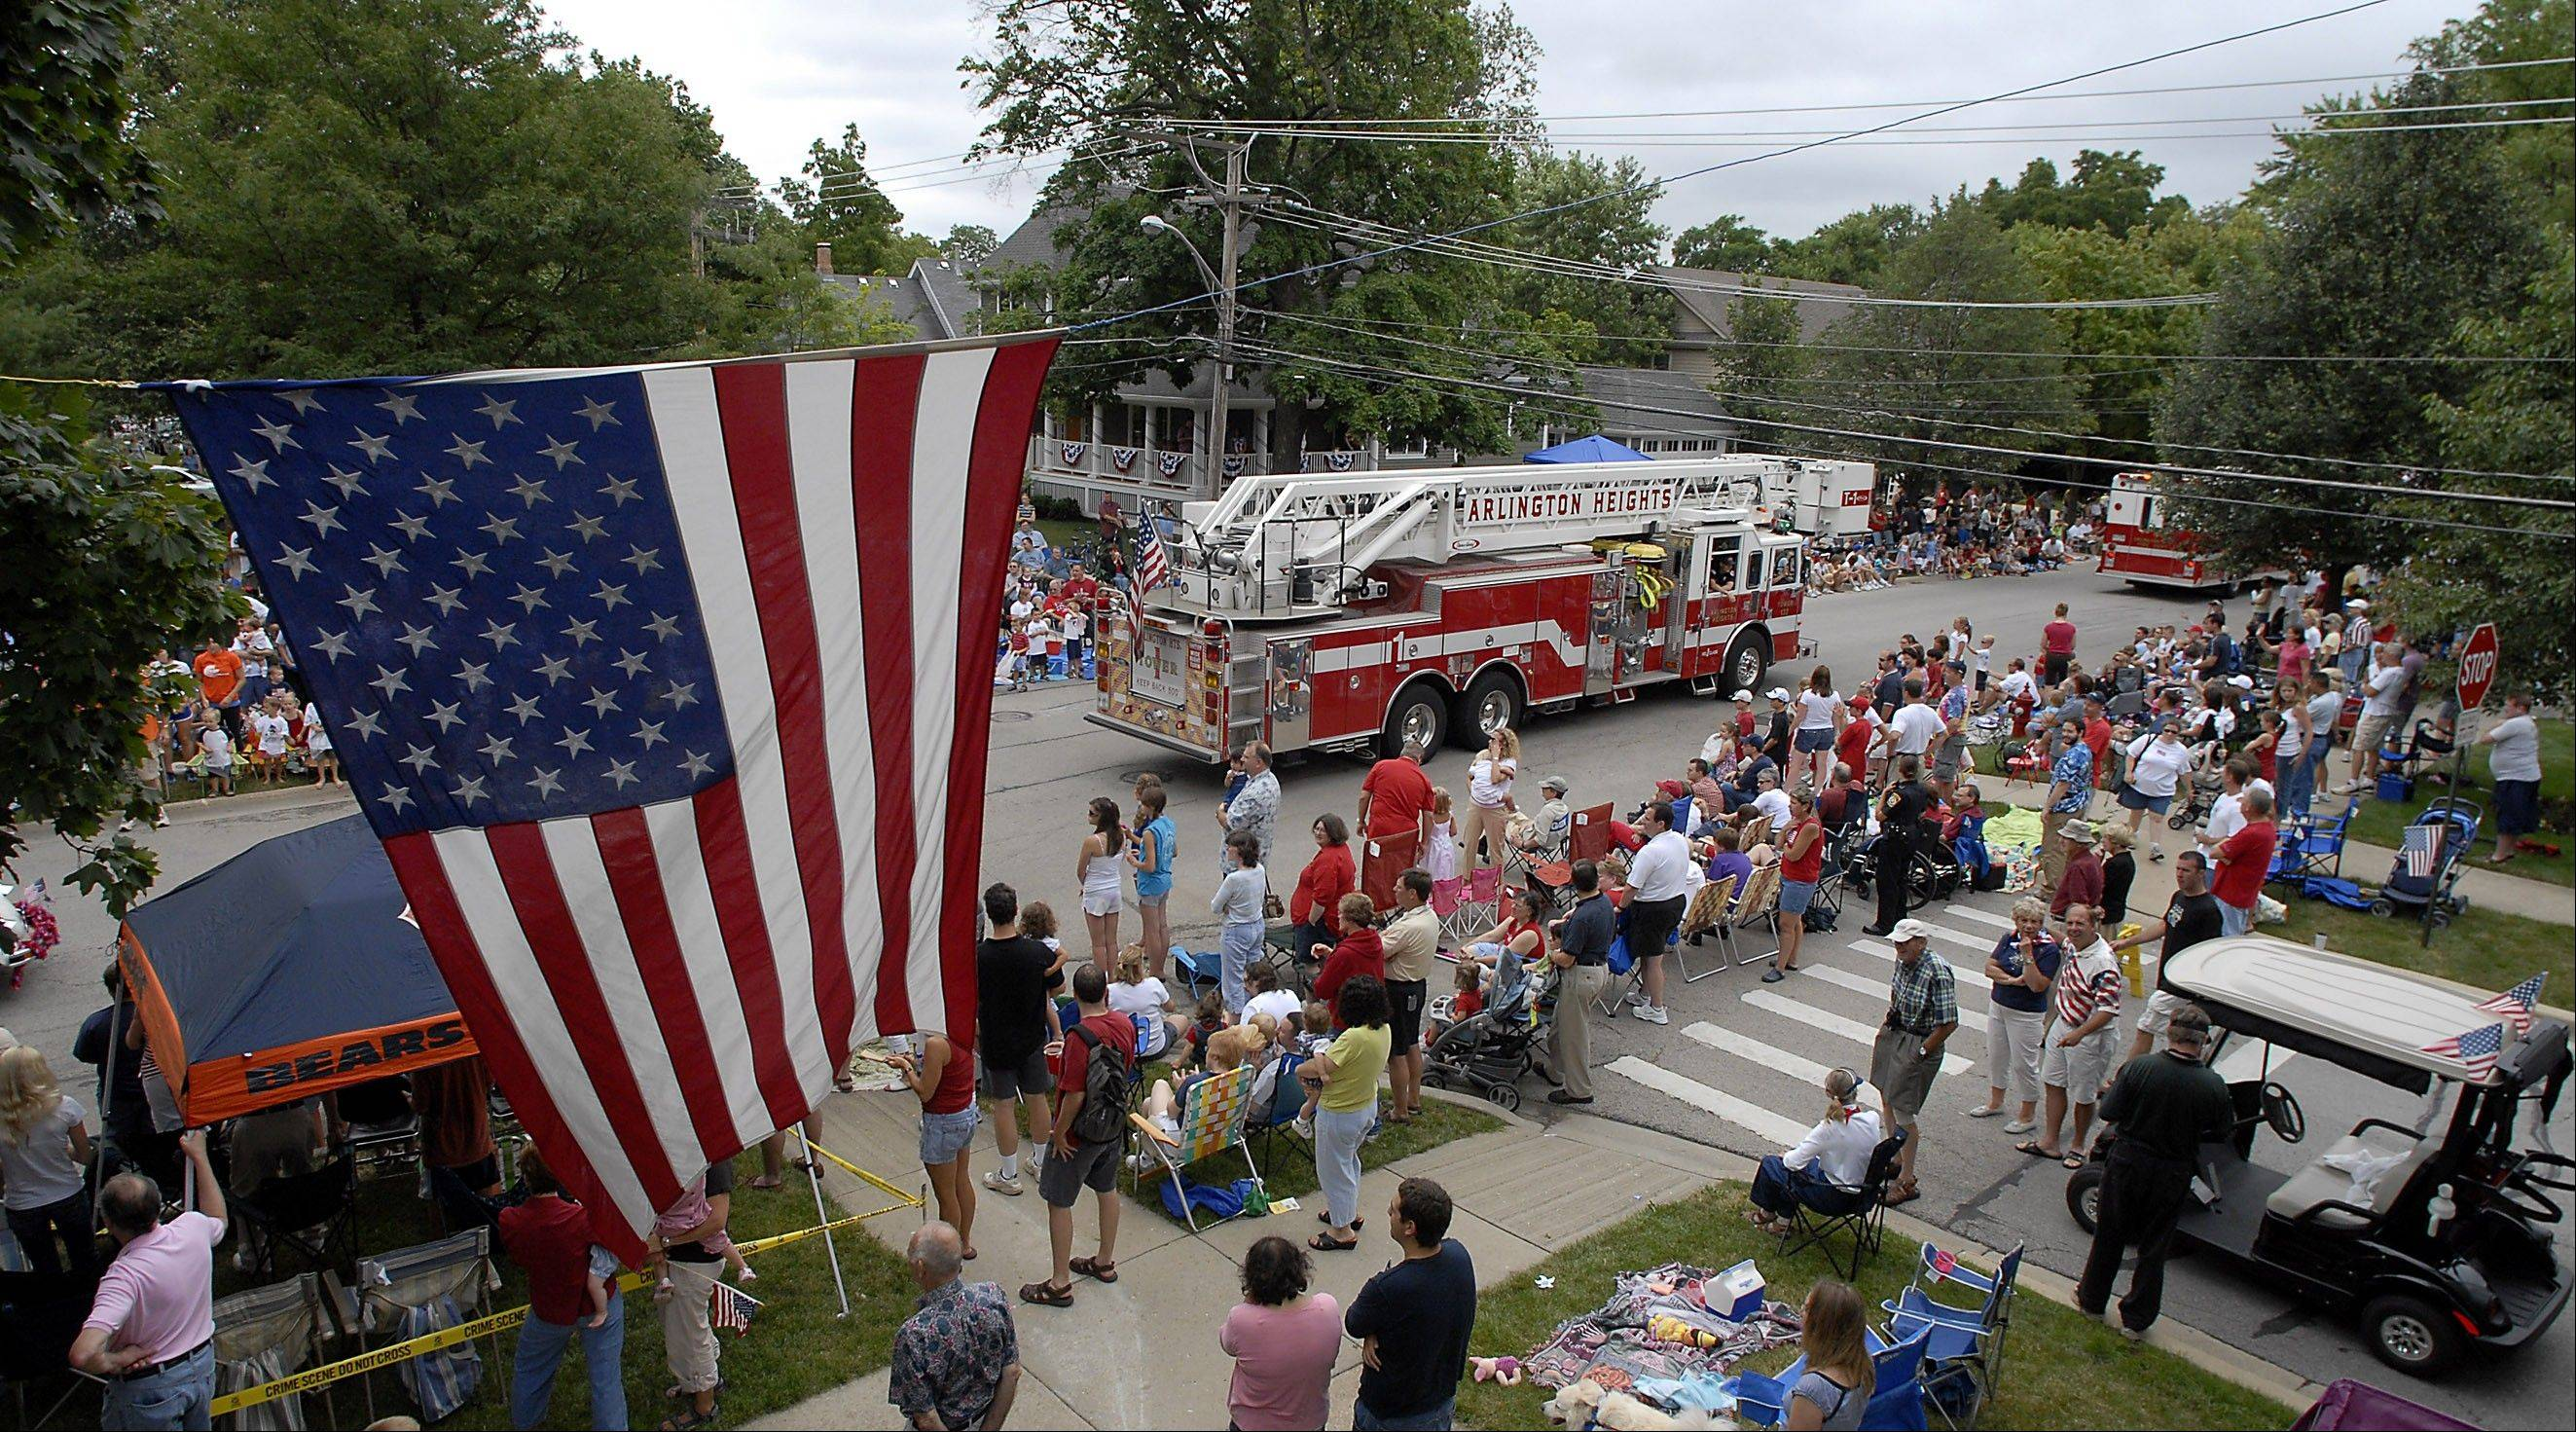 DAILY HERALD FILE PHOTOA previous year's Arlington Heights parade rolls along in front of the usual huge crowds.